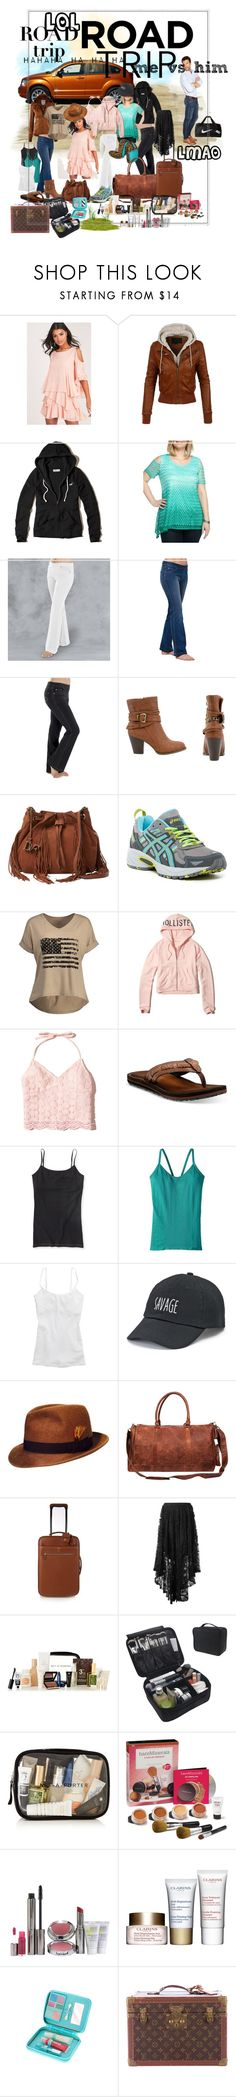 """""""lol road trip"""" by caroline-buster-brown ❤ liked on Polyvore featuring LE3NO, Hollister Co., Kim Rogers, Olivia Miller, Diane Von Furstenberg, Asics, Clarks, Aéropostale, Patagonia and Aerie"""